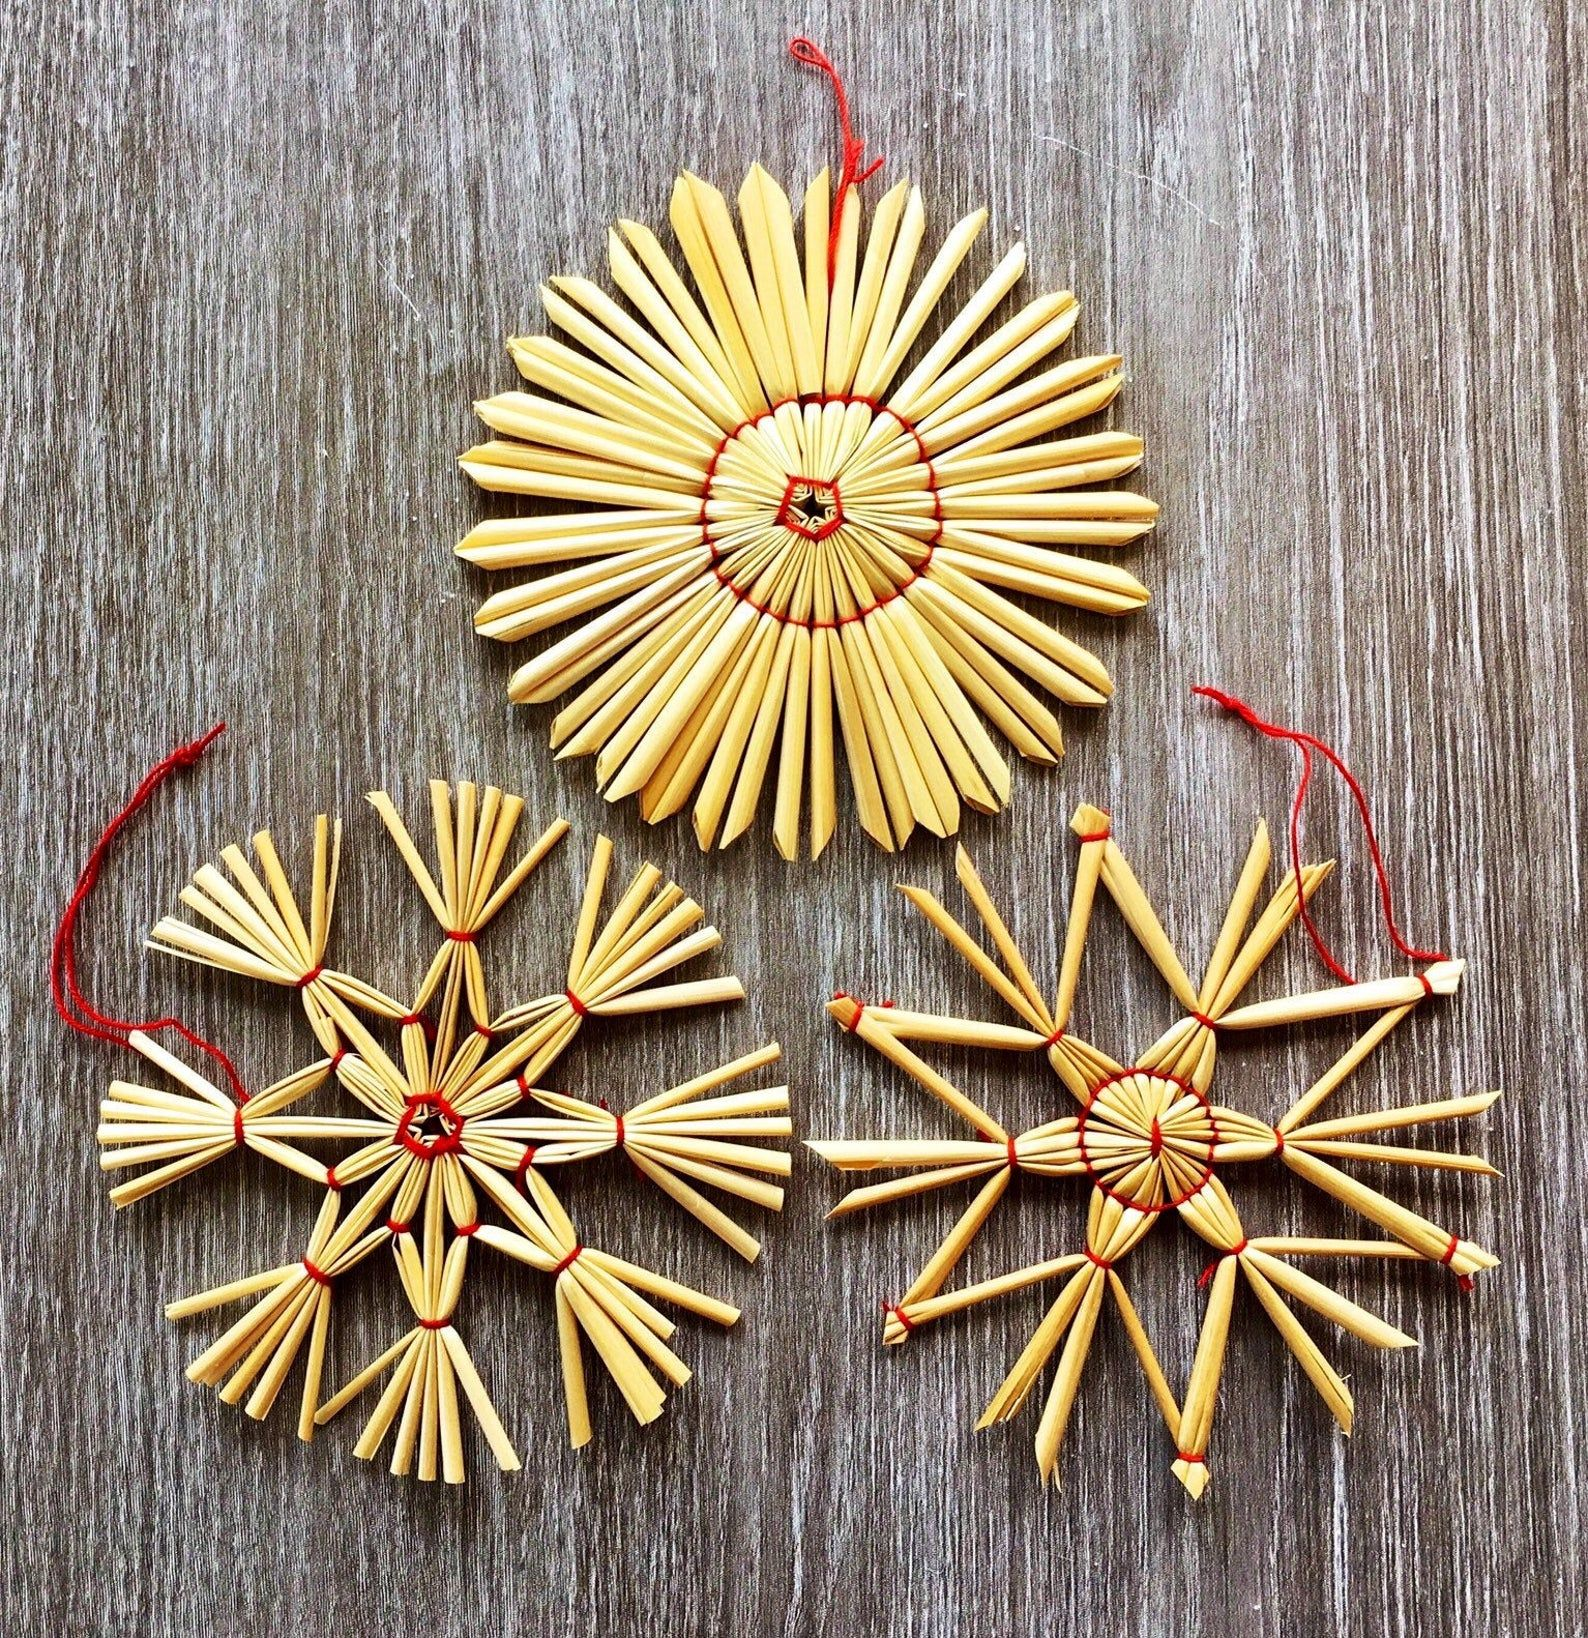 German Straw Christmas Ornaments To Buy Or Make German Christmas Ornaments Christmas Ornaments Christmas Tree Ornaments